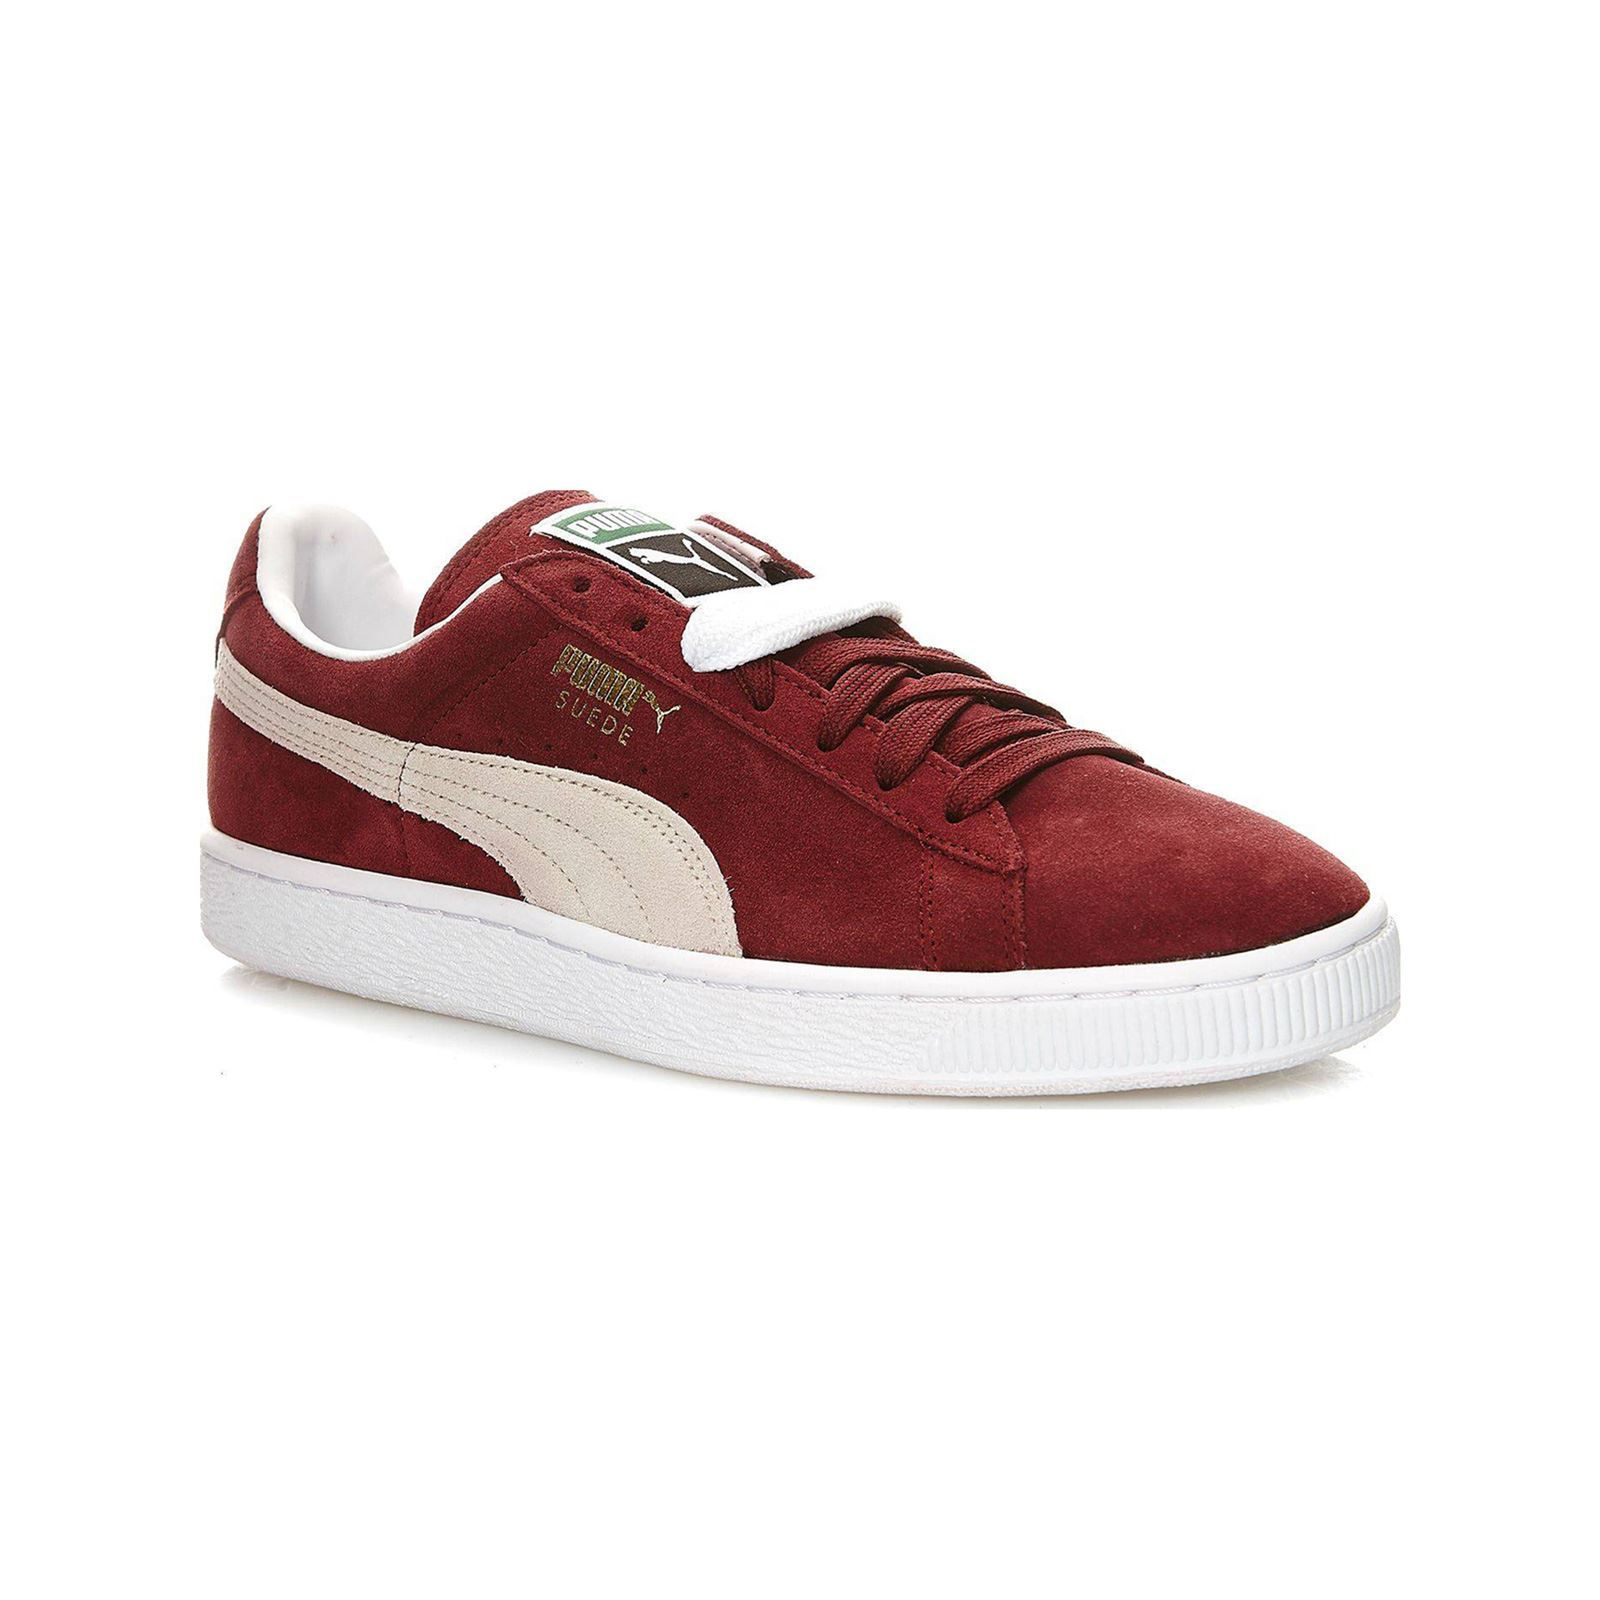 Puma Suede Classic - Baskets en cuir suédé - bordeaux  Baskets